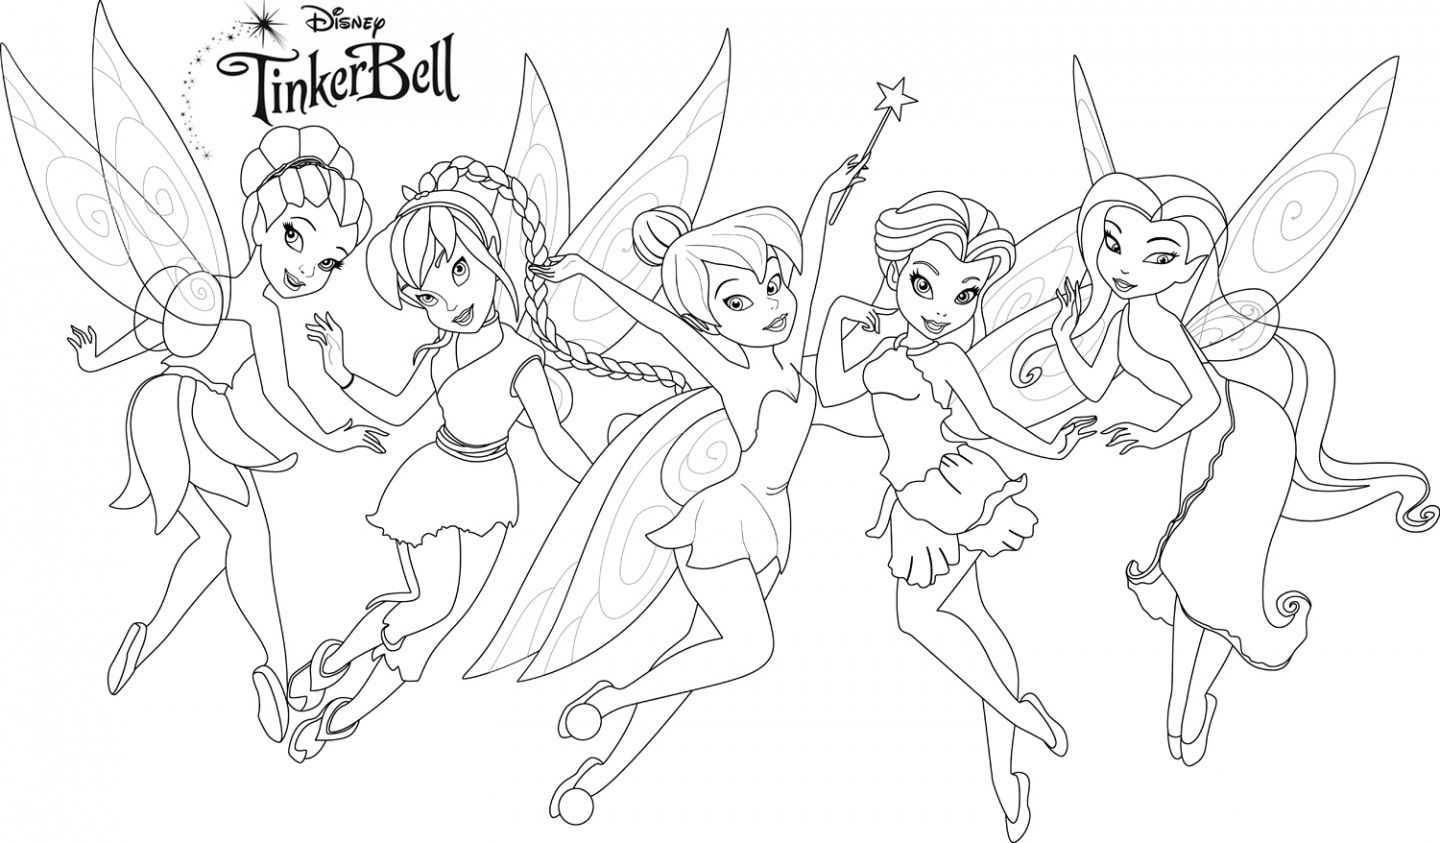 coloring pages : Peter Pan Coloring Pages Luxury Free Tink ... | 843x1440